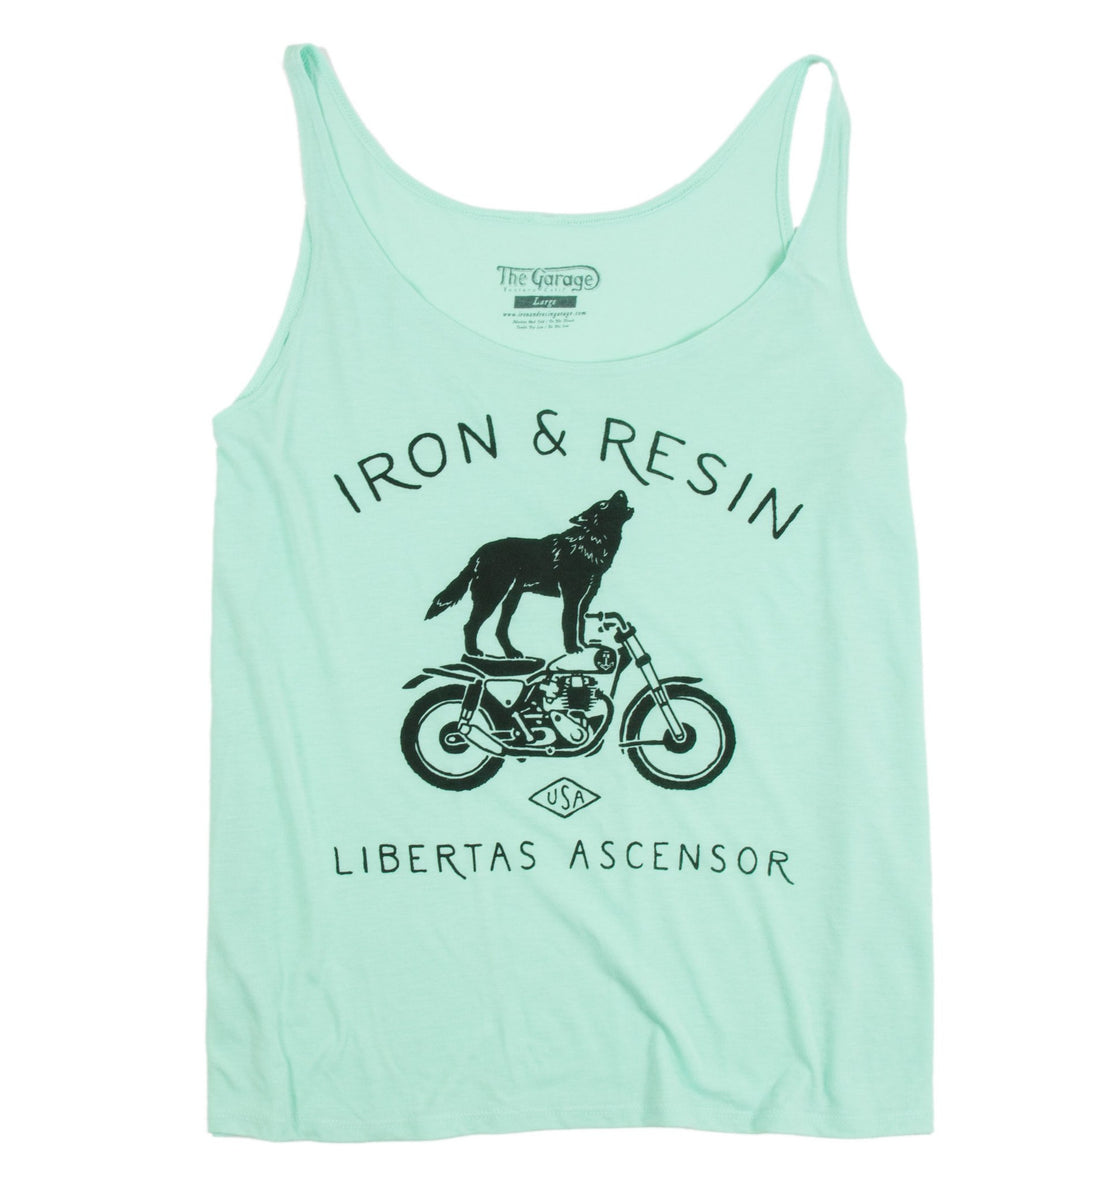 INR Howling Women's Tank - Apparel: Women's: T-Shirts - Iron and Resin